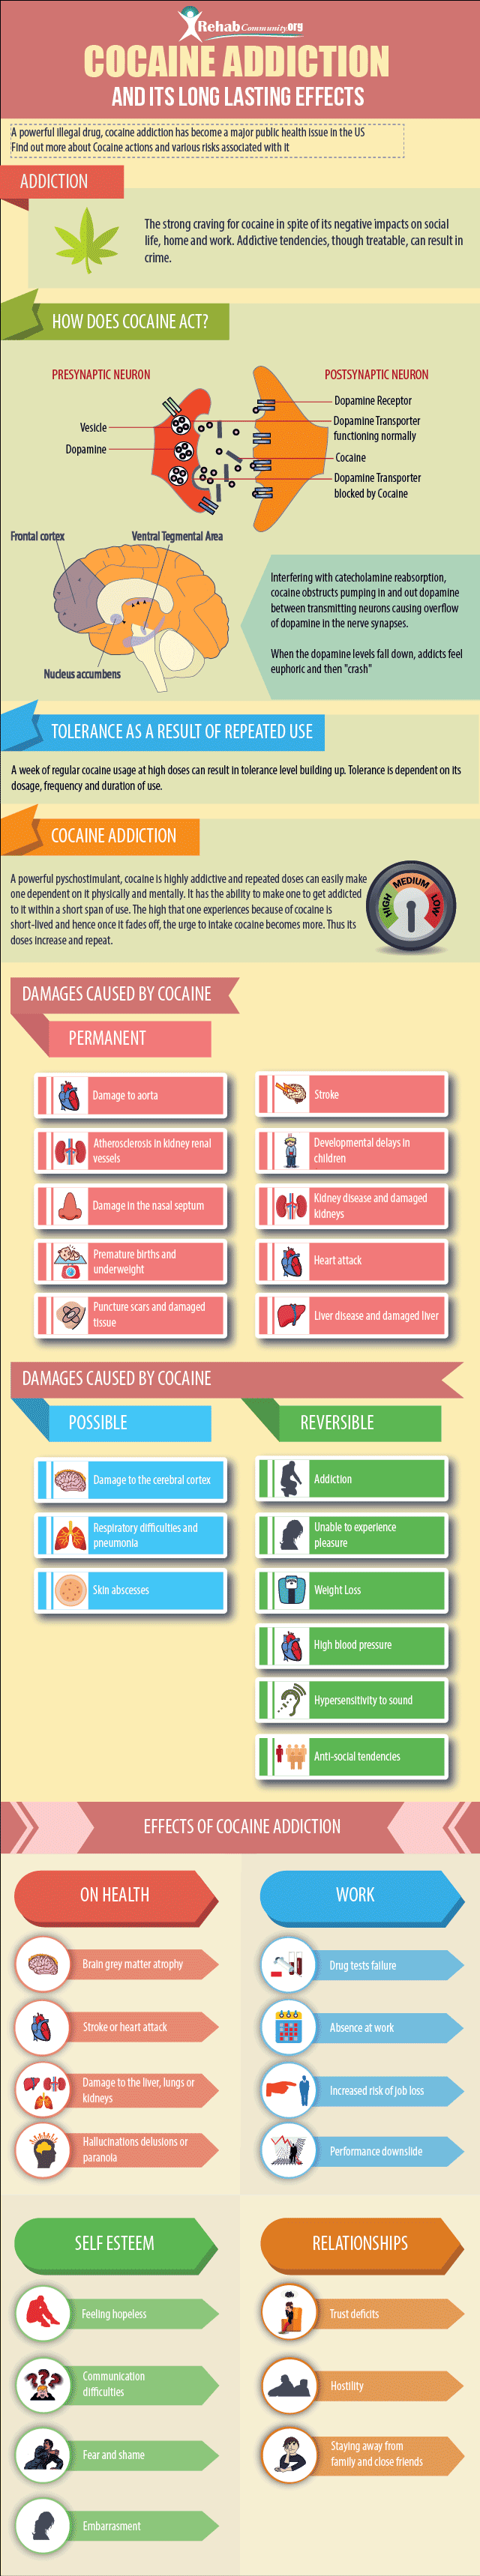 cocaine effects infographic